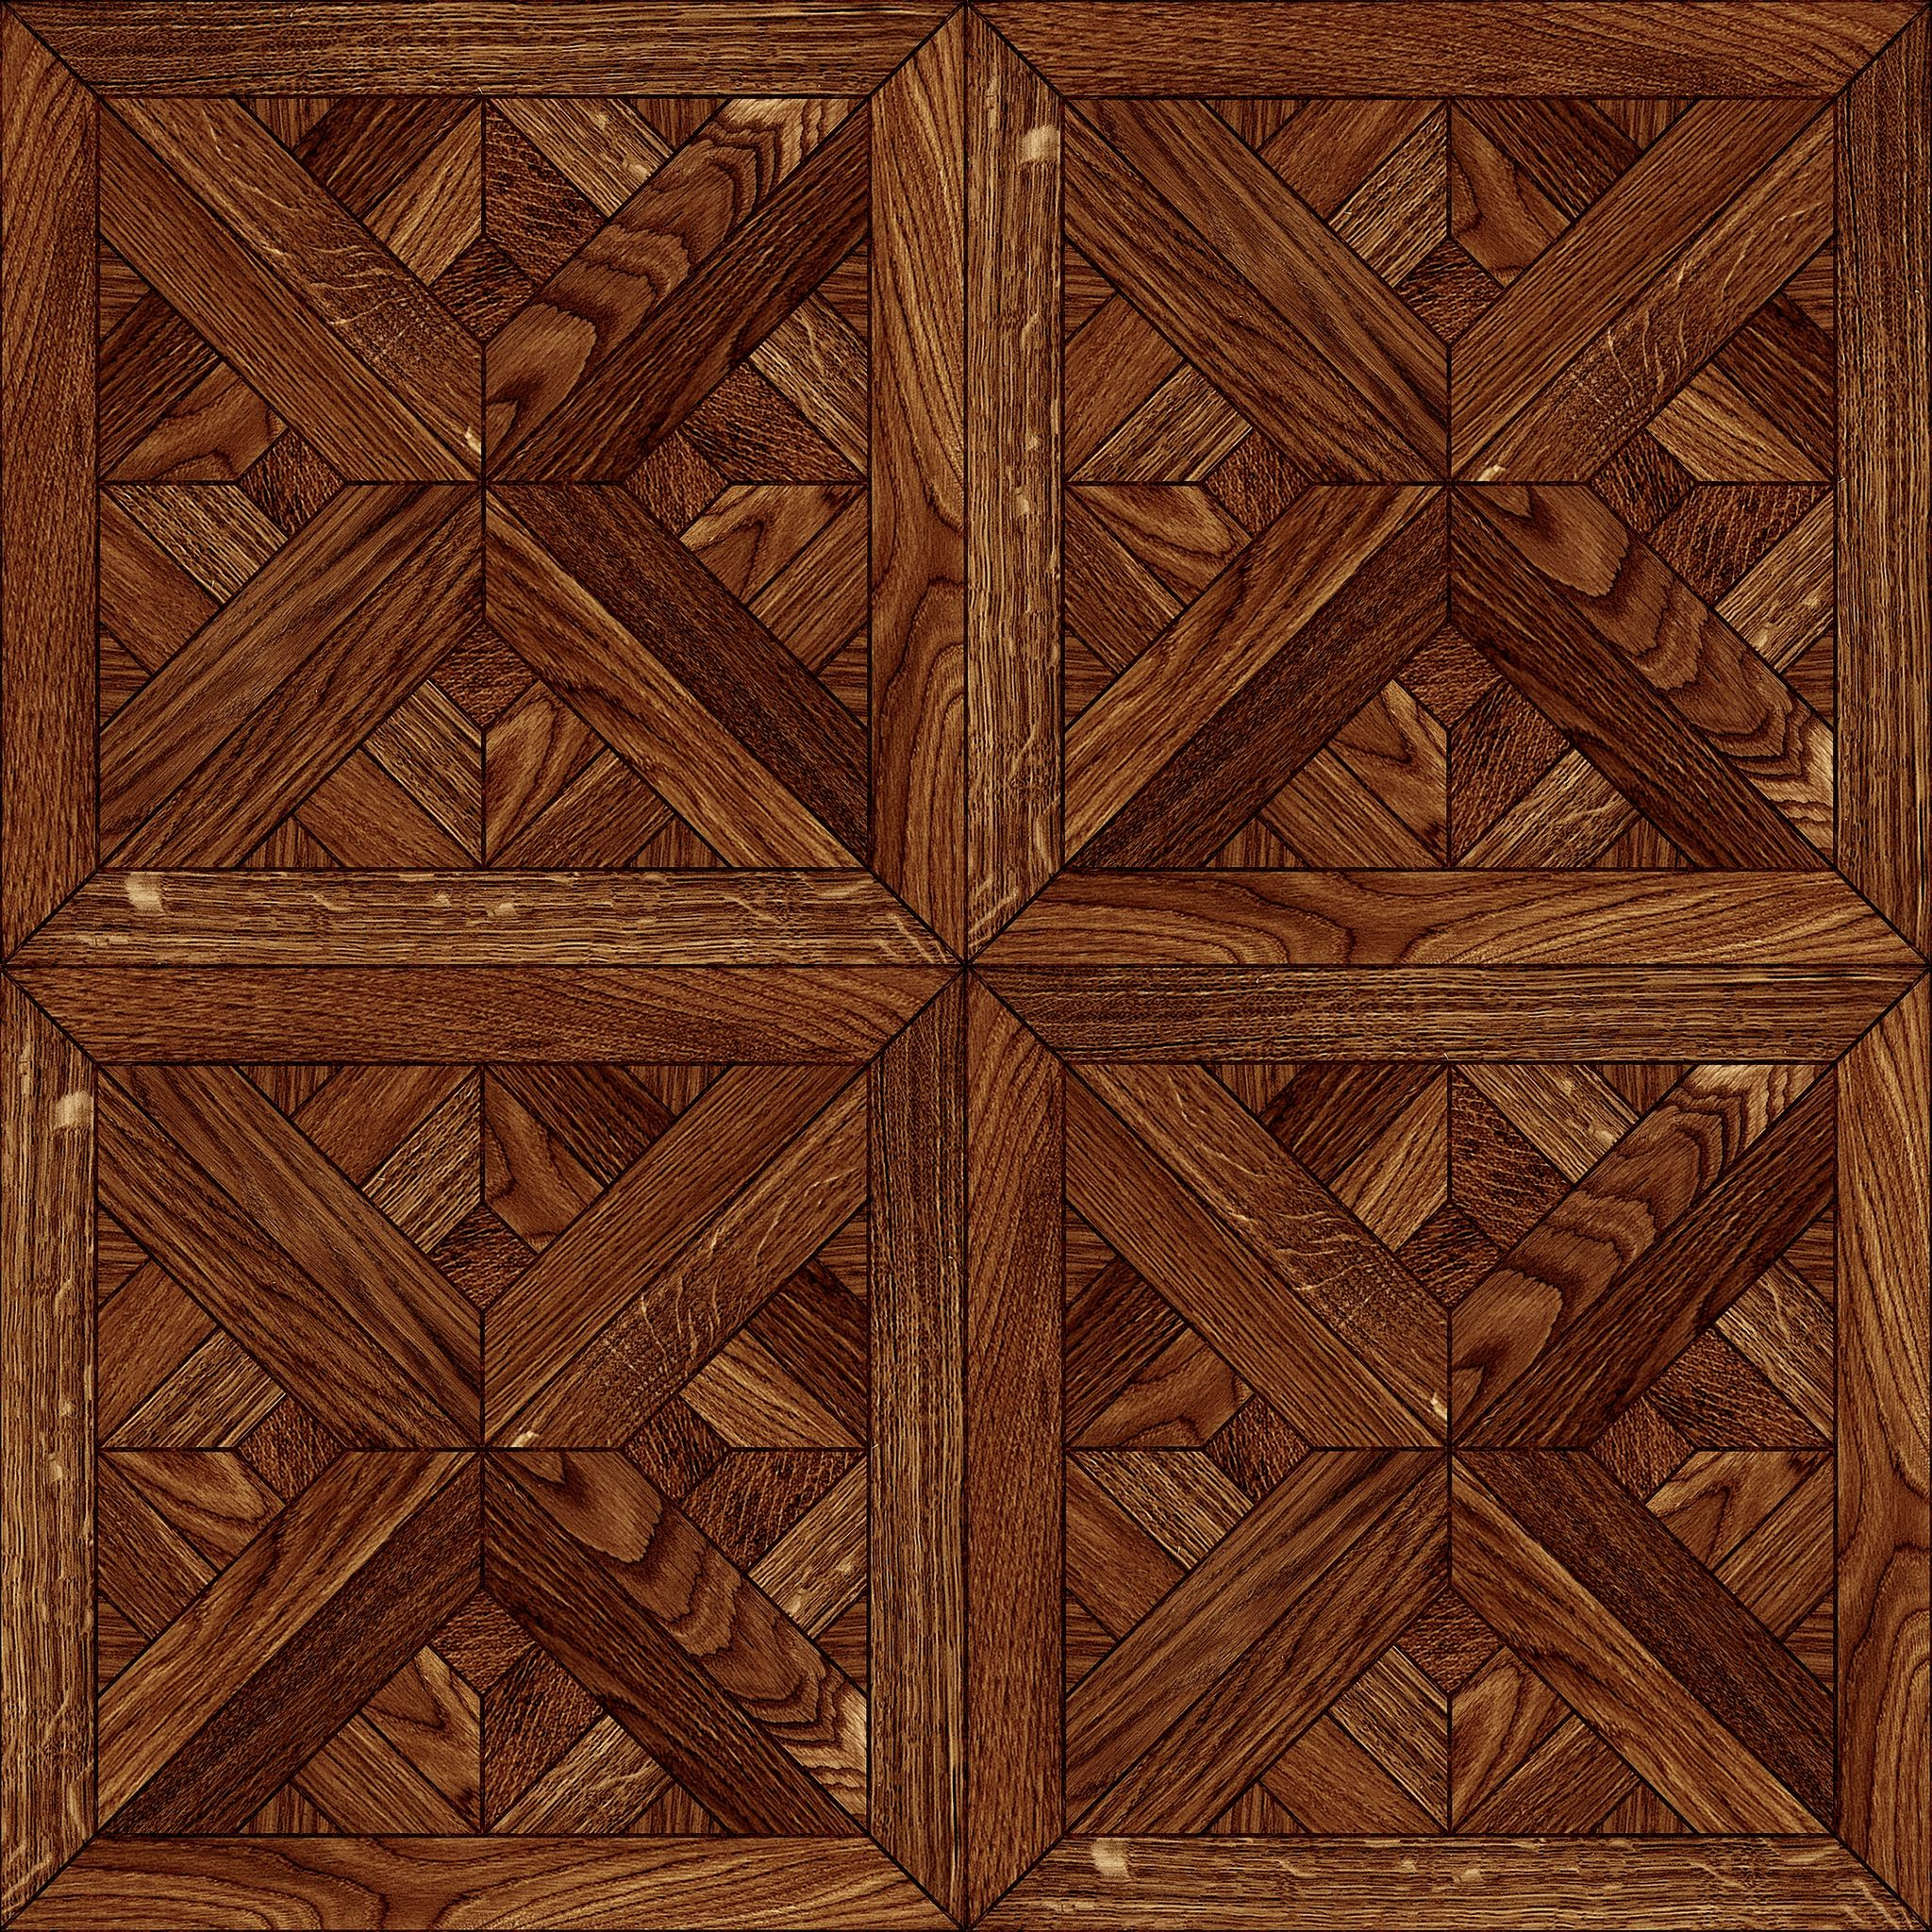 Seamless Floor Wooden Checker Texture Woodfloordoctor Com